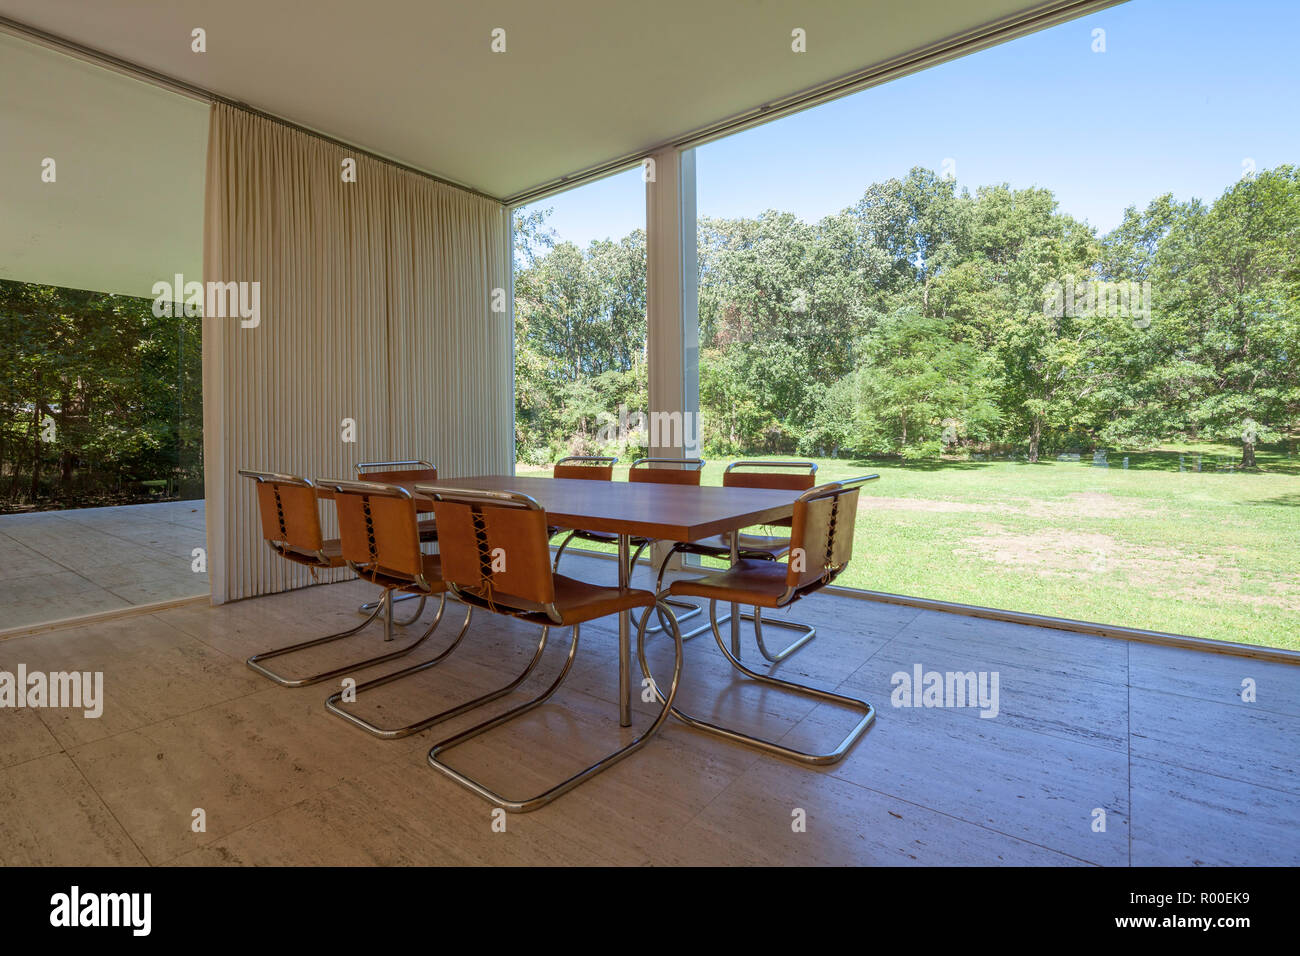 Dining table interior of farnsworth house by architect ludwig mies van der rohe 1951 plano illinois usa